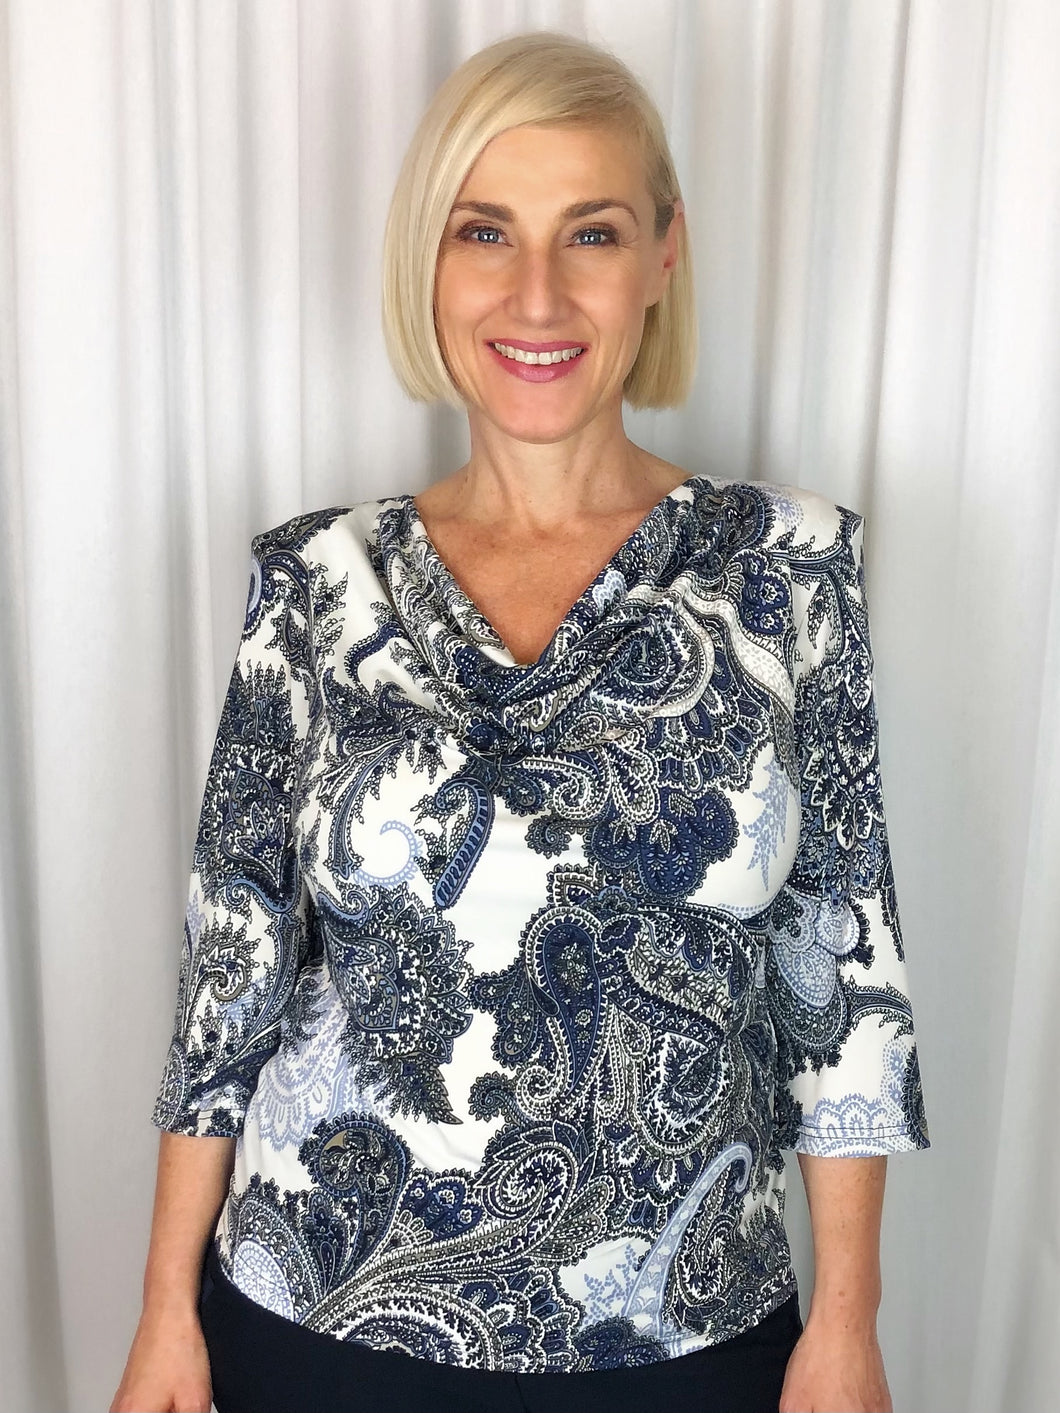 Our 3/4 Sleeve Paisley Cowl Neck is an elegant top for any time of day. Featuring a dramatic design in navy, blue and neutral tones with details of puff paint that compliment the style. Made in Australia from Poly/Spandex, it's fully washable and drips dry with no ironing required.